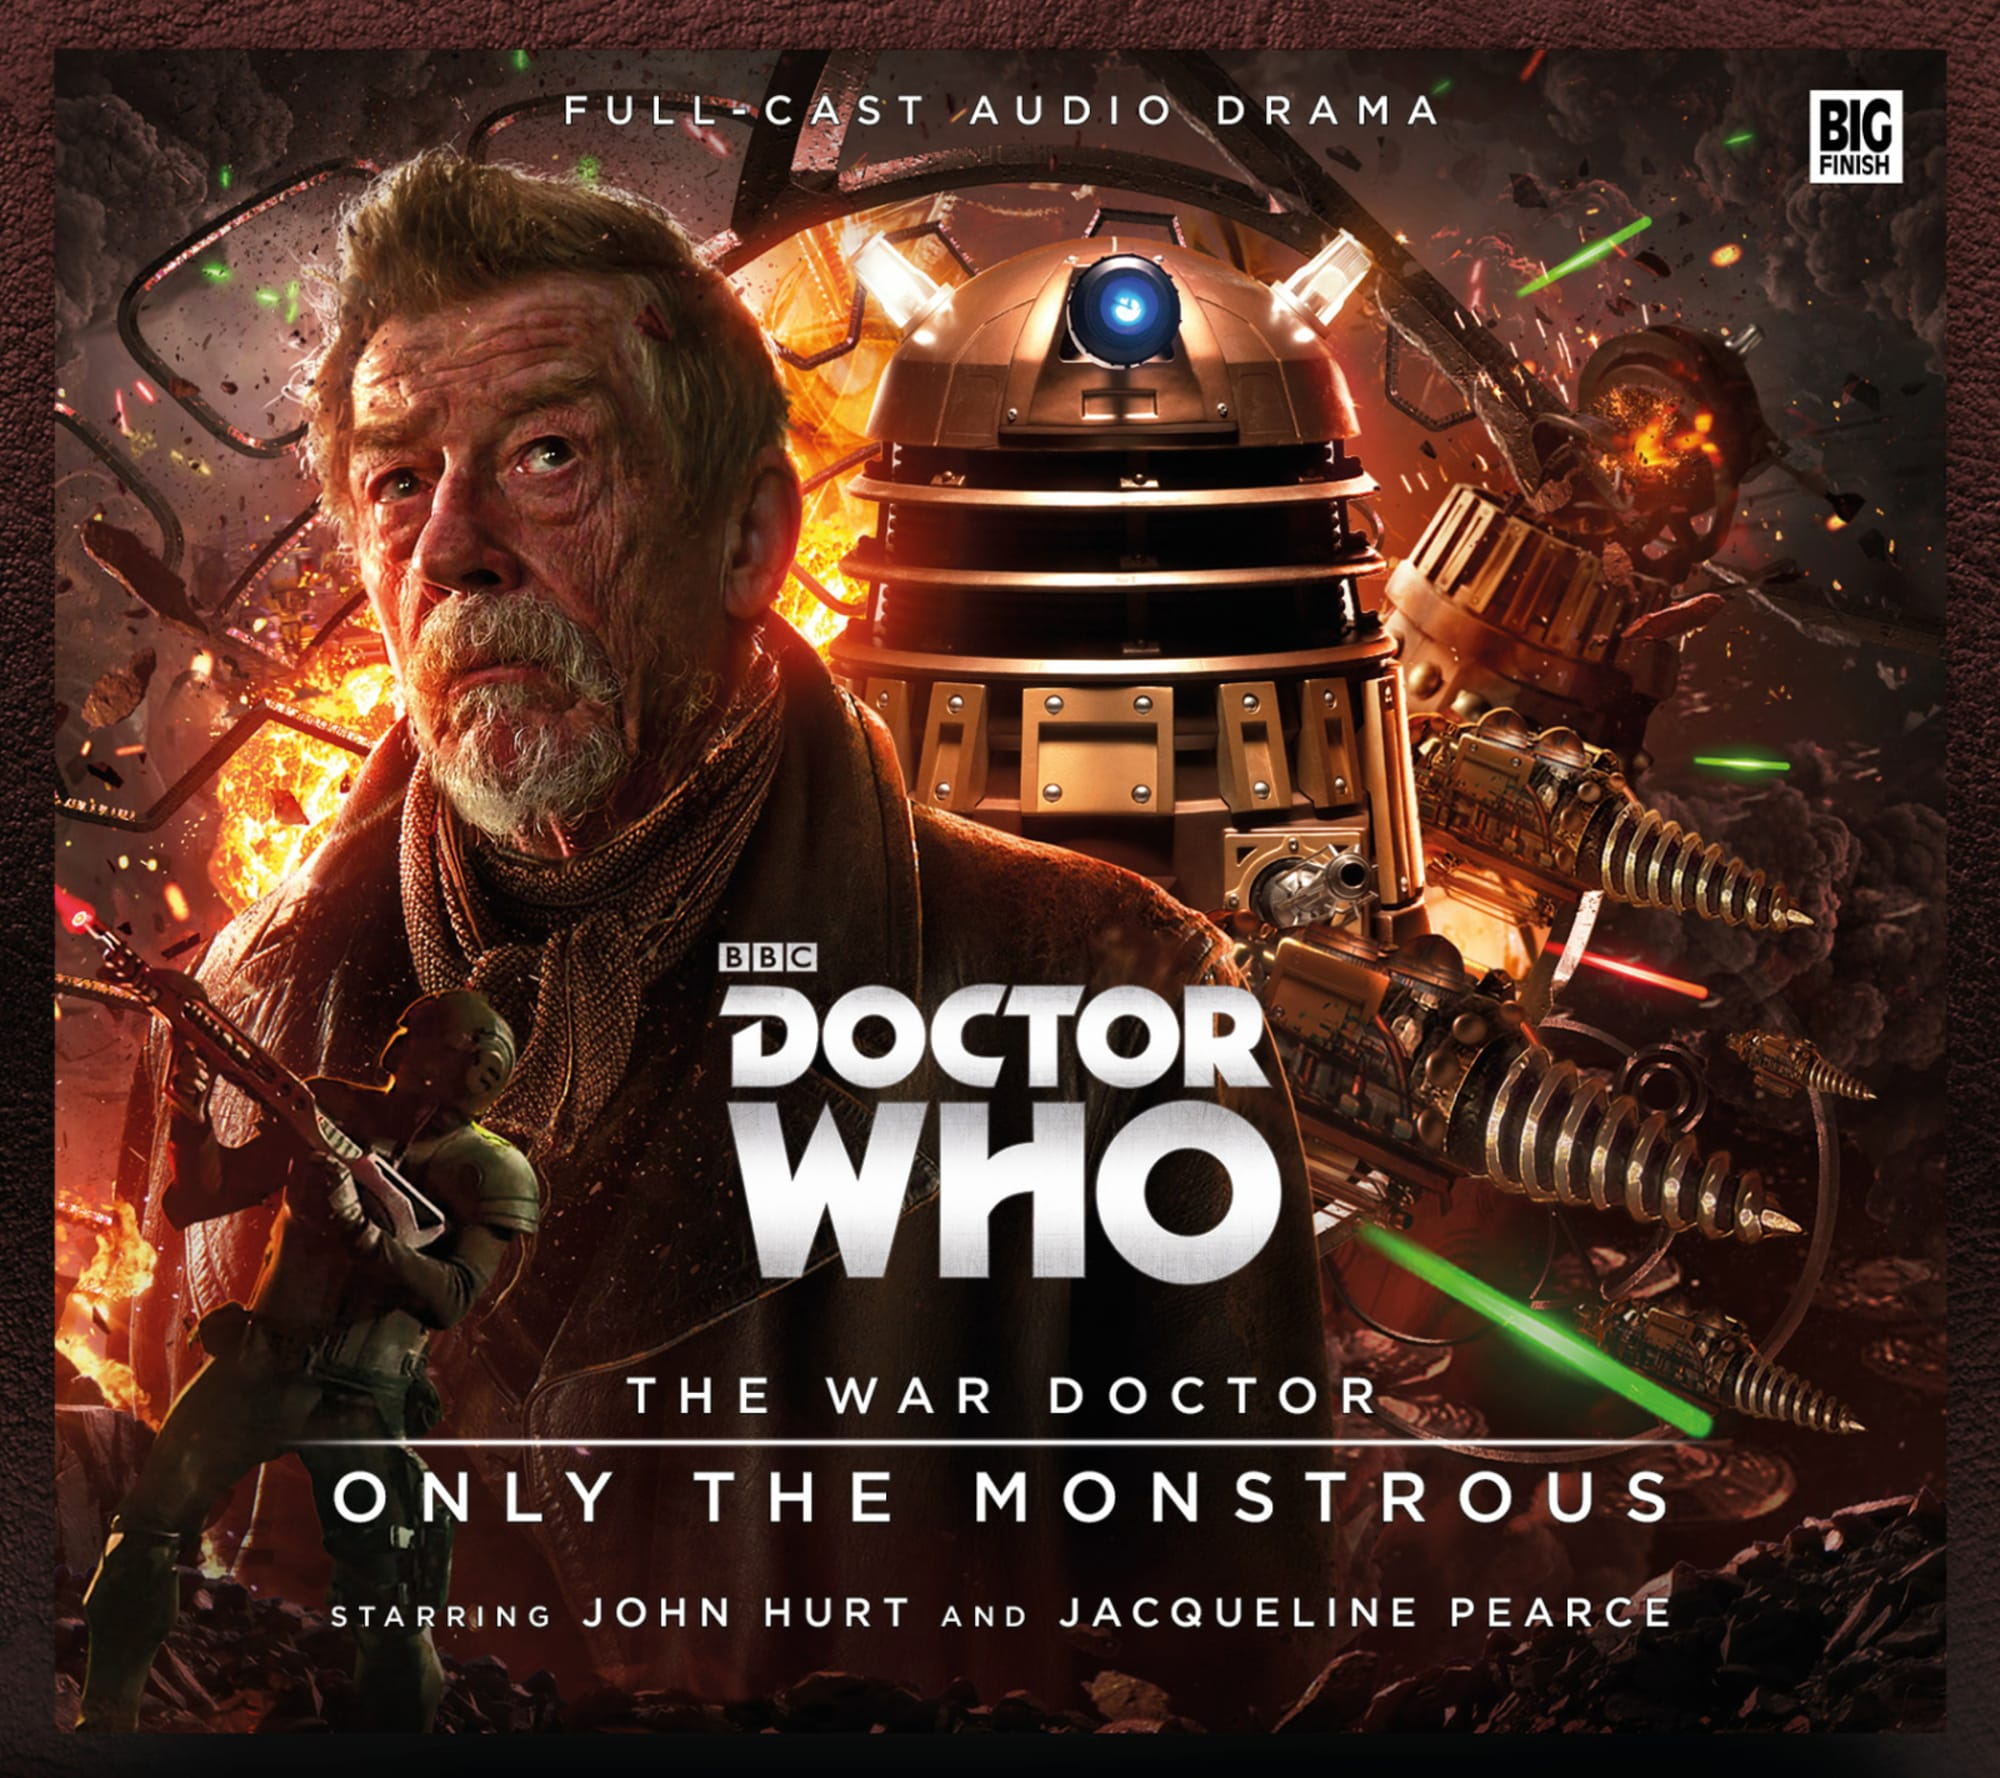 Doctor Who: The War Doctor Begins – What can we look forward to?